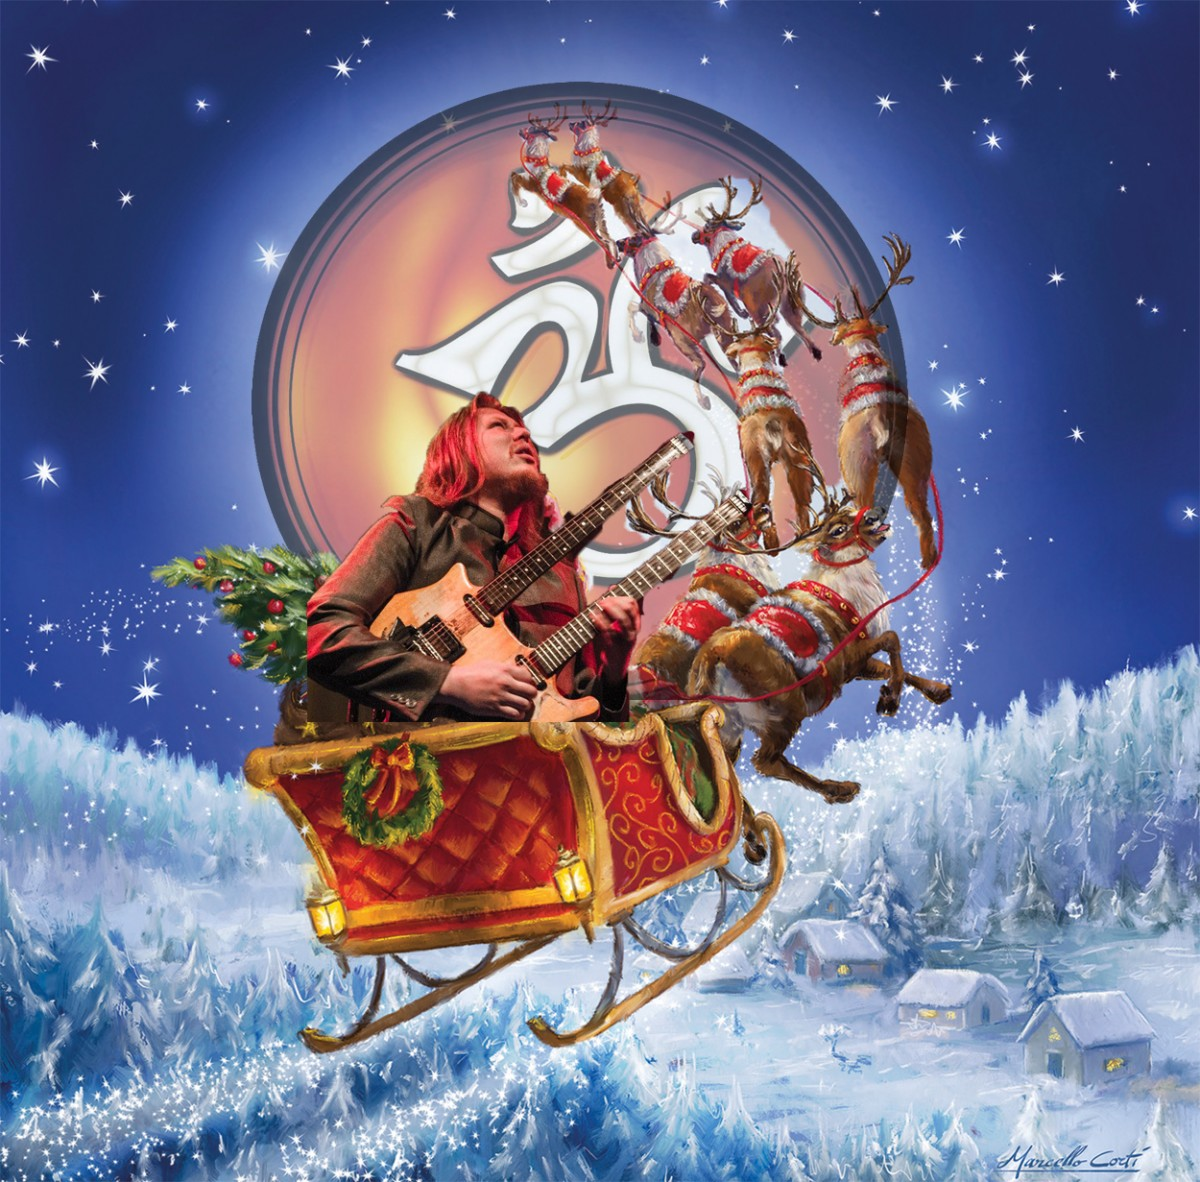 One Source Open Sleigh – A Consider the Source Christmas Story